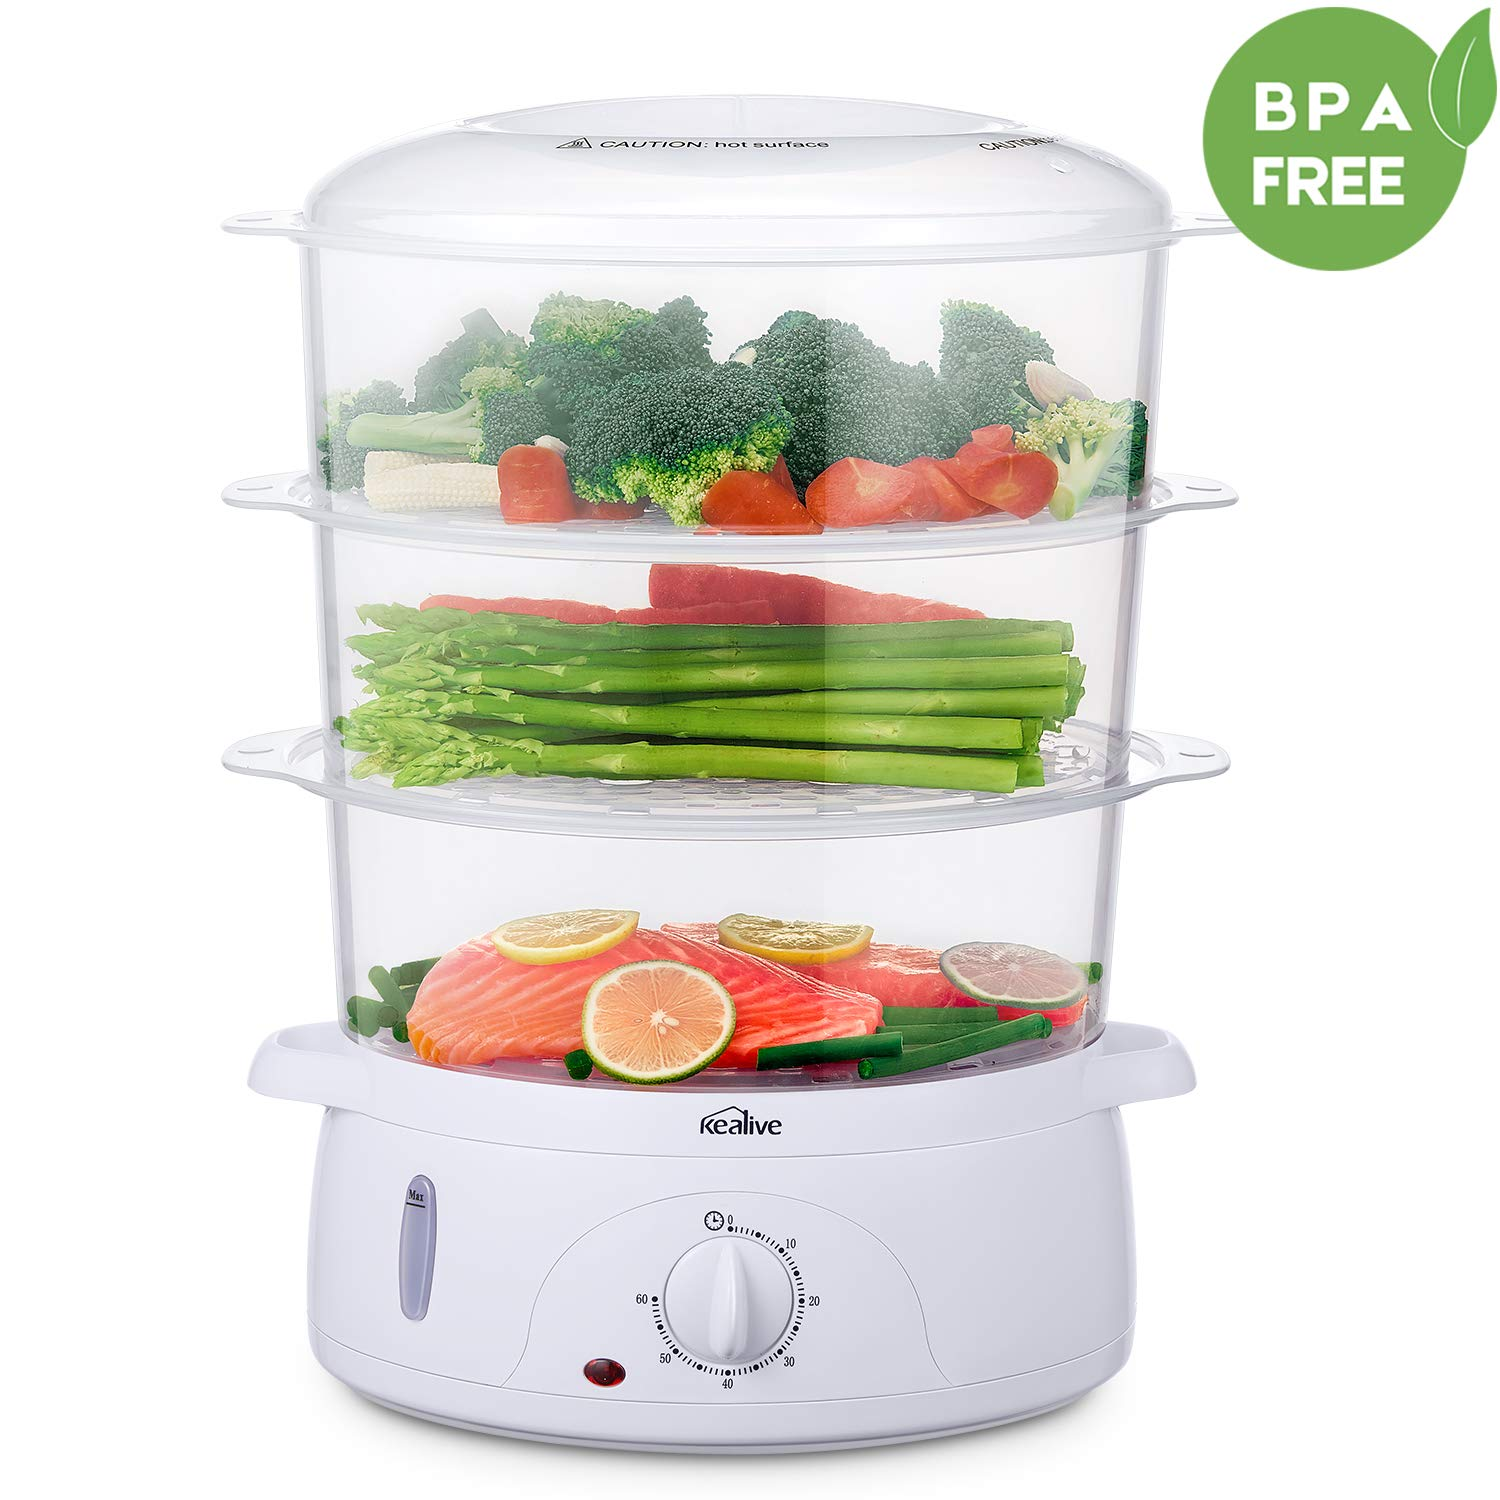 Food Steamer, Vegetable Steamer BPA-Free with Timer and 3 Tier Stackable Baskets, Electric Steamer Pot Cooker Built-in Rice Bowl , 9.5 Quart Capacity and 800W Fast Heat Up, by Kealive